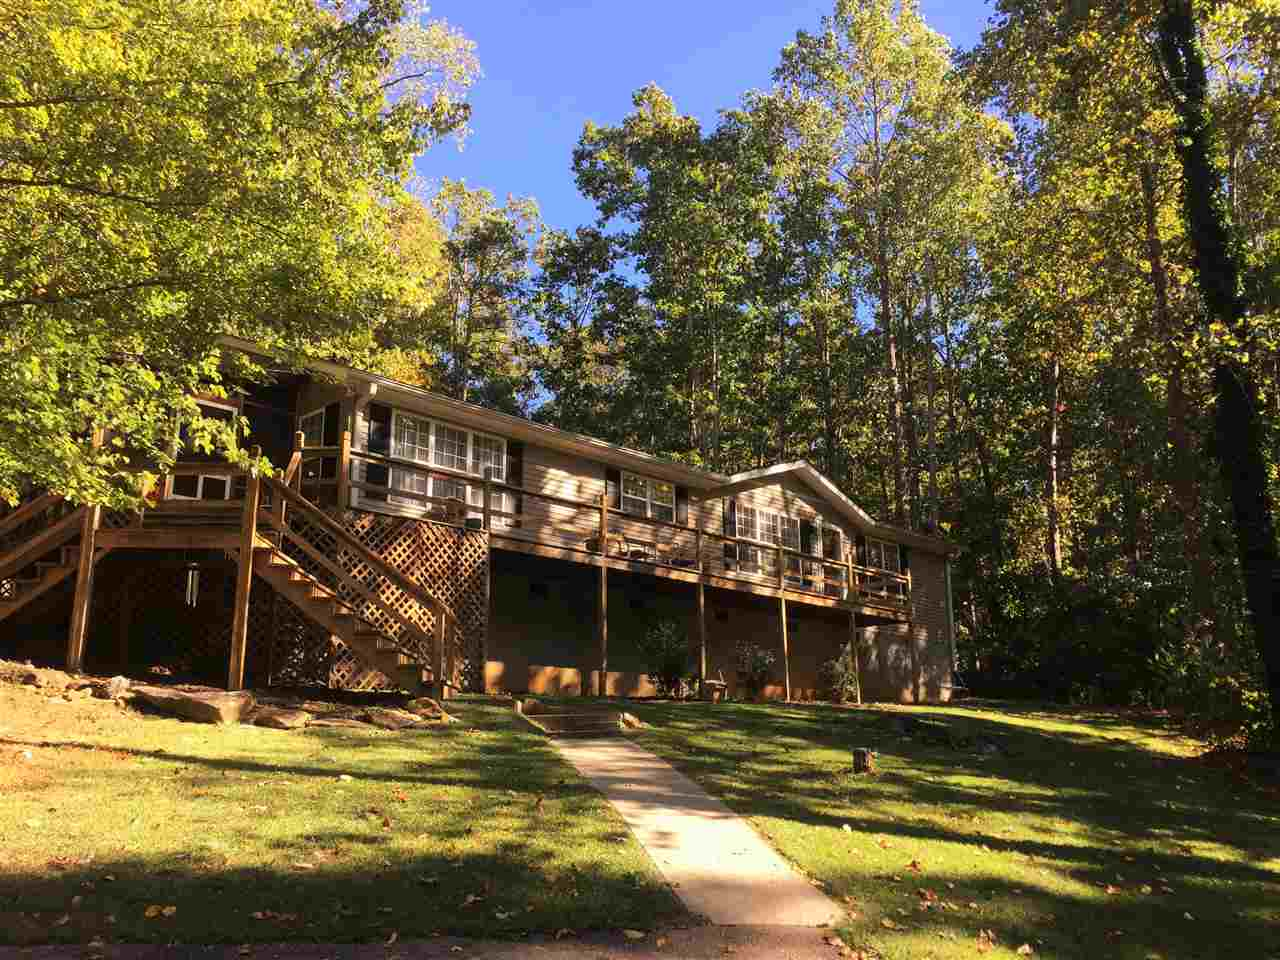 202 Boat Ramp Rd, Westminster, SC 29693